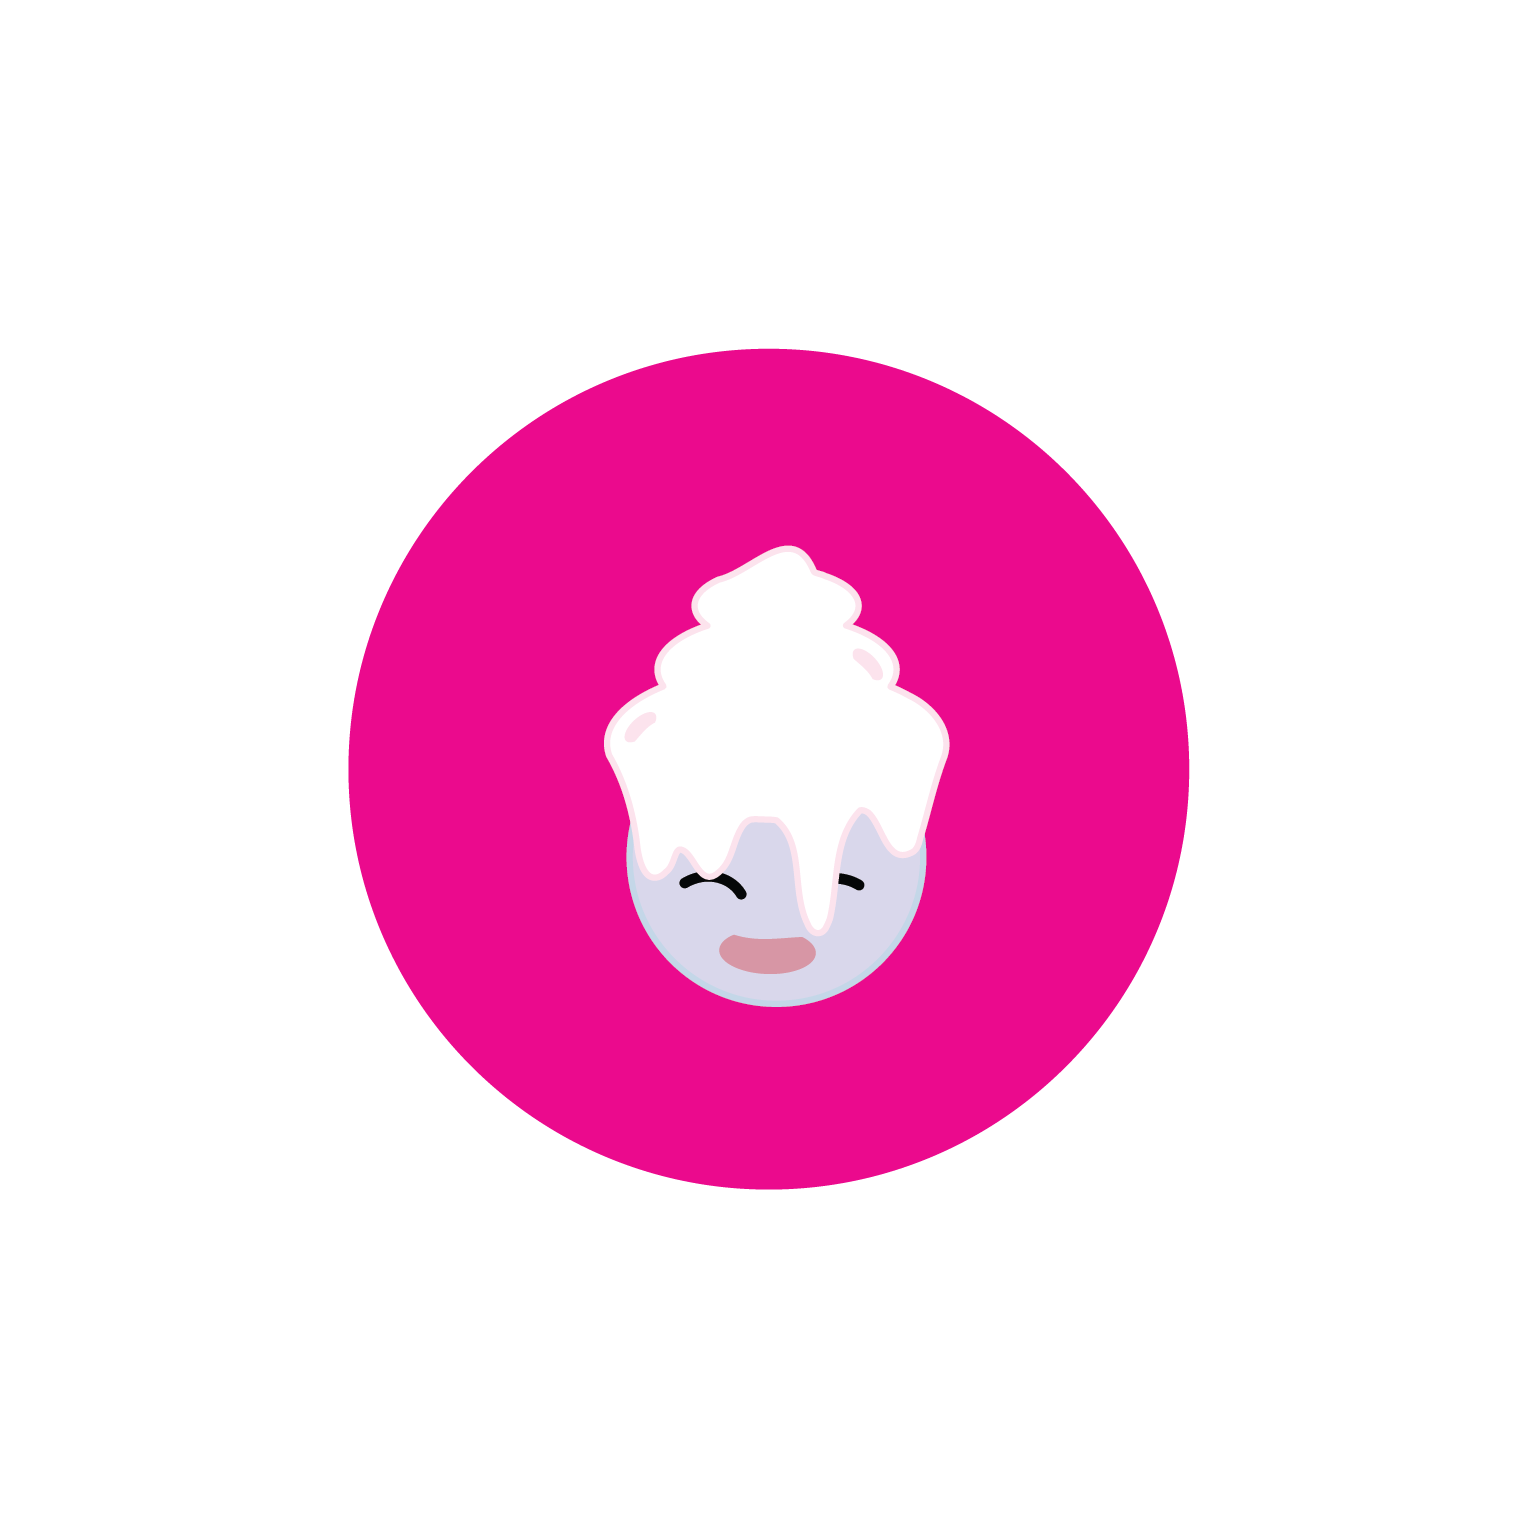 PPP-0001_whipcream-01.png